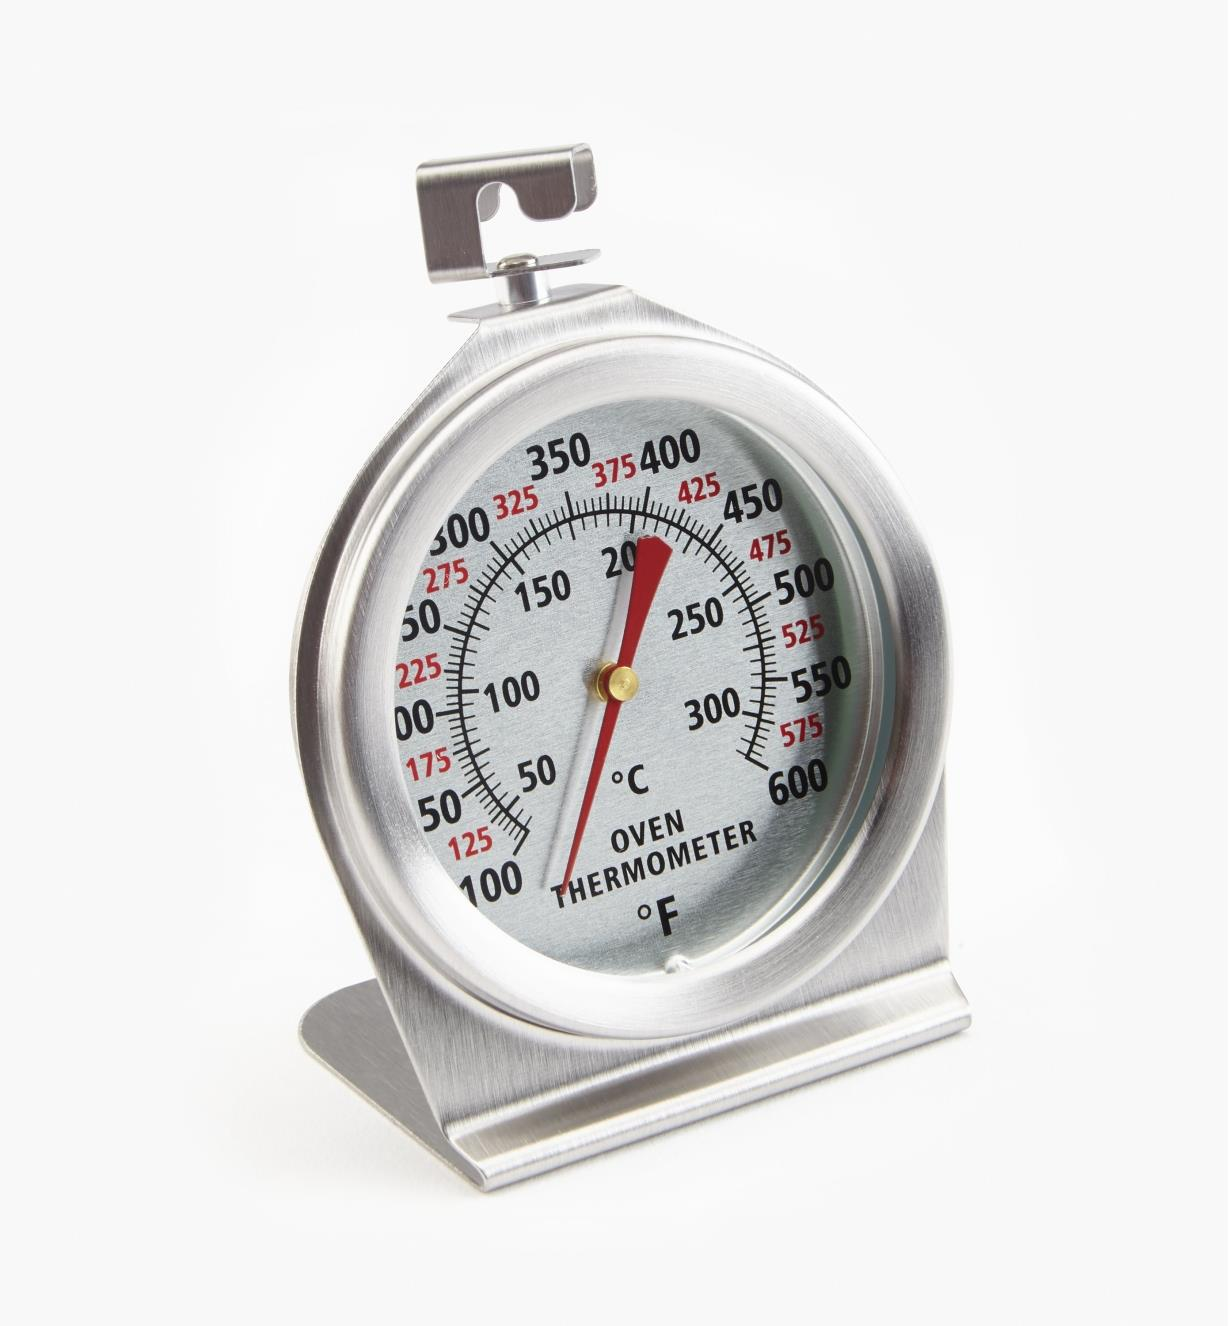 FT126 - Oven Thermometer